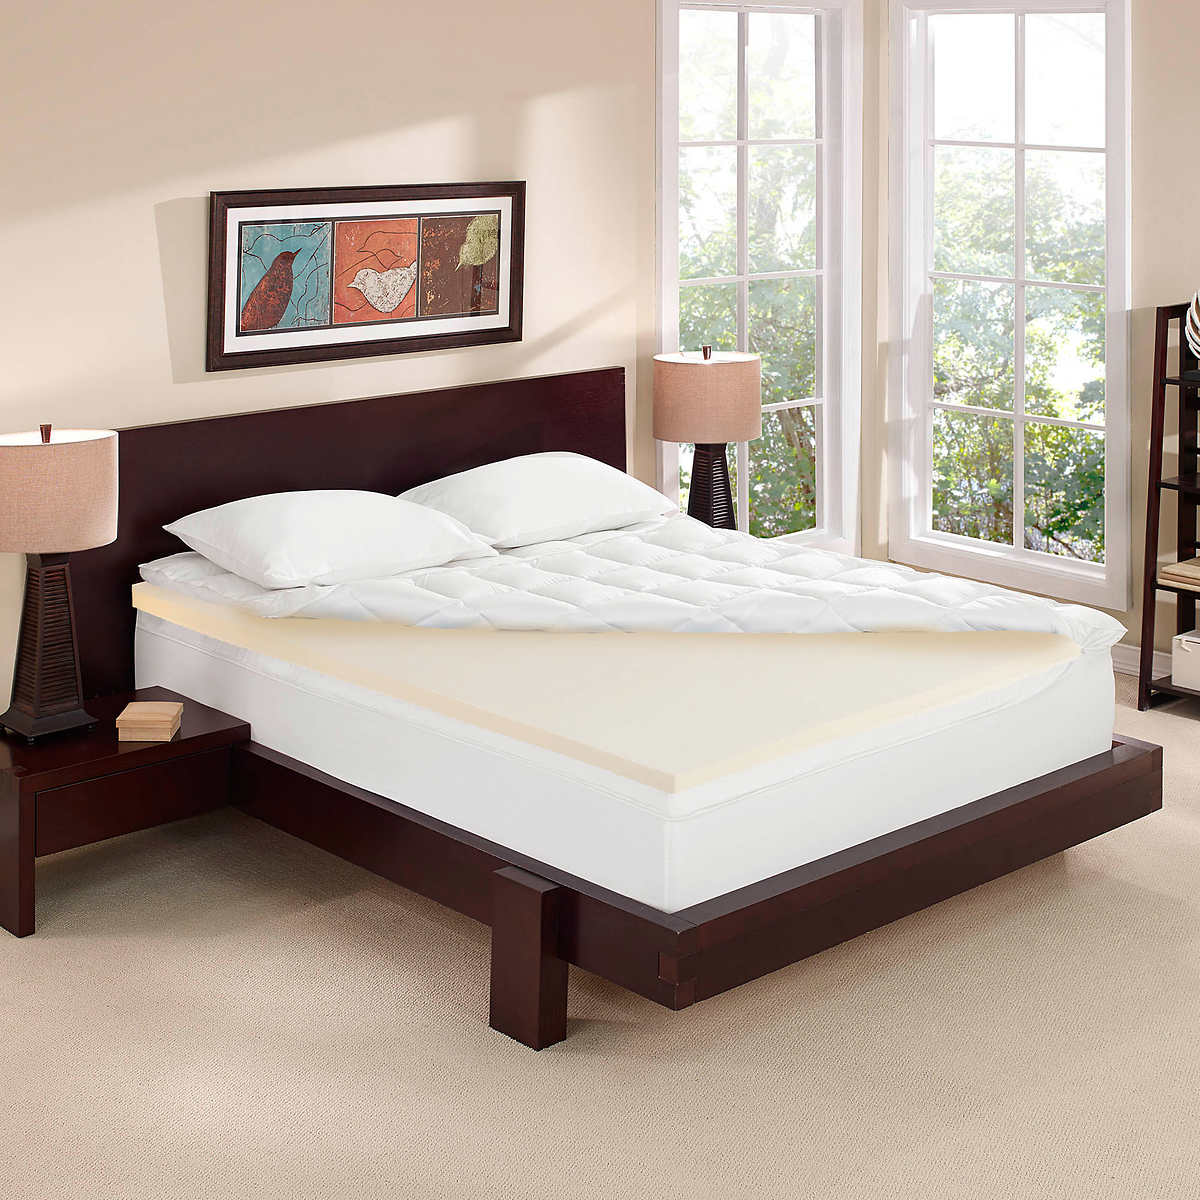 Novaform 4 Dual Layer Memory Foam Mattress Topper